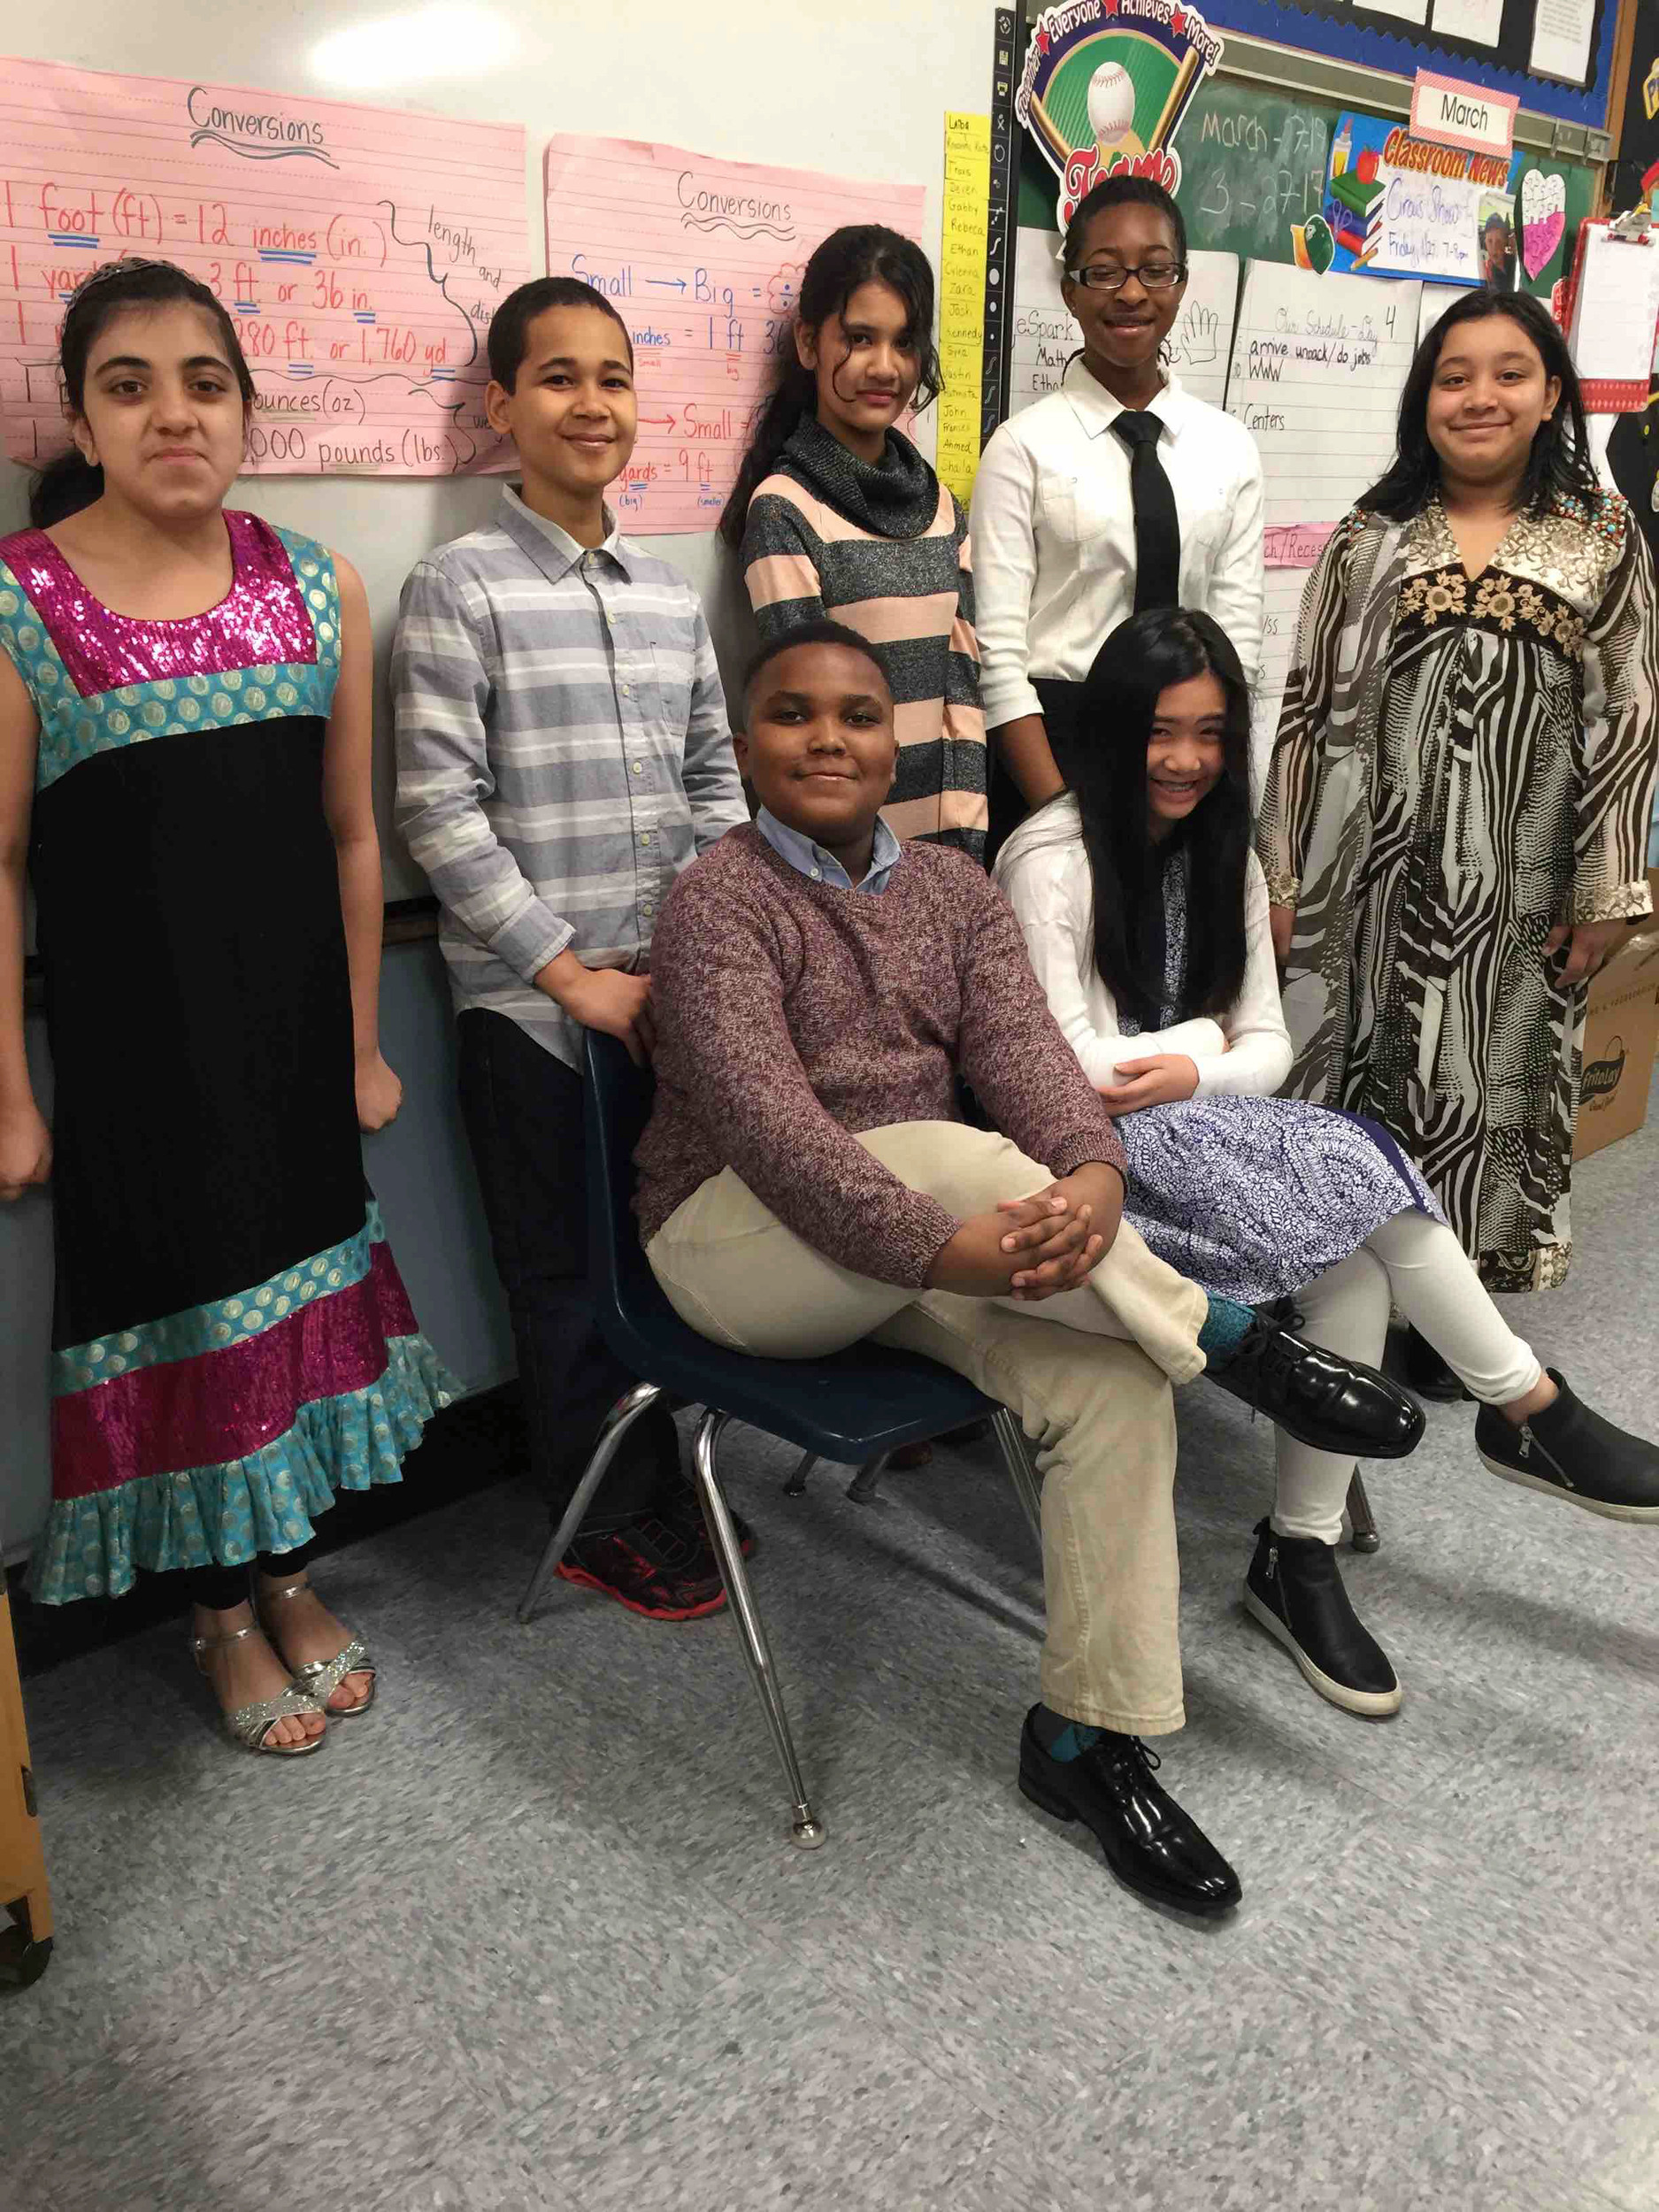 Forest Road Elementary School students debated school uniforms.